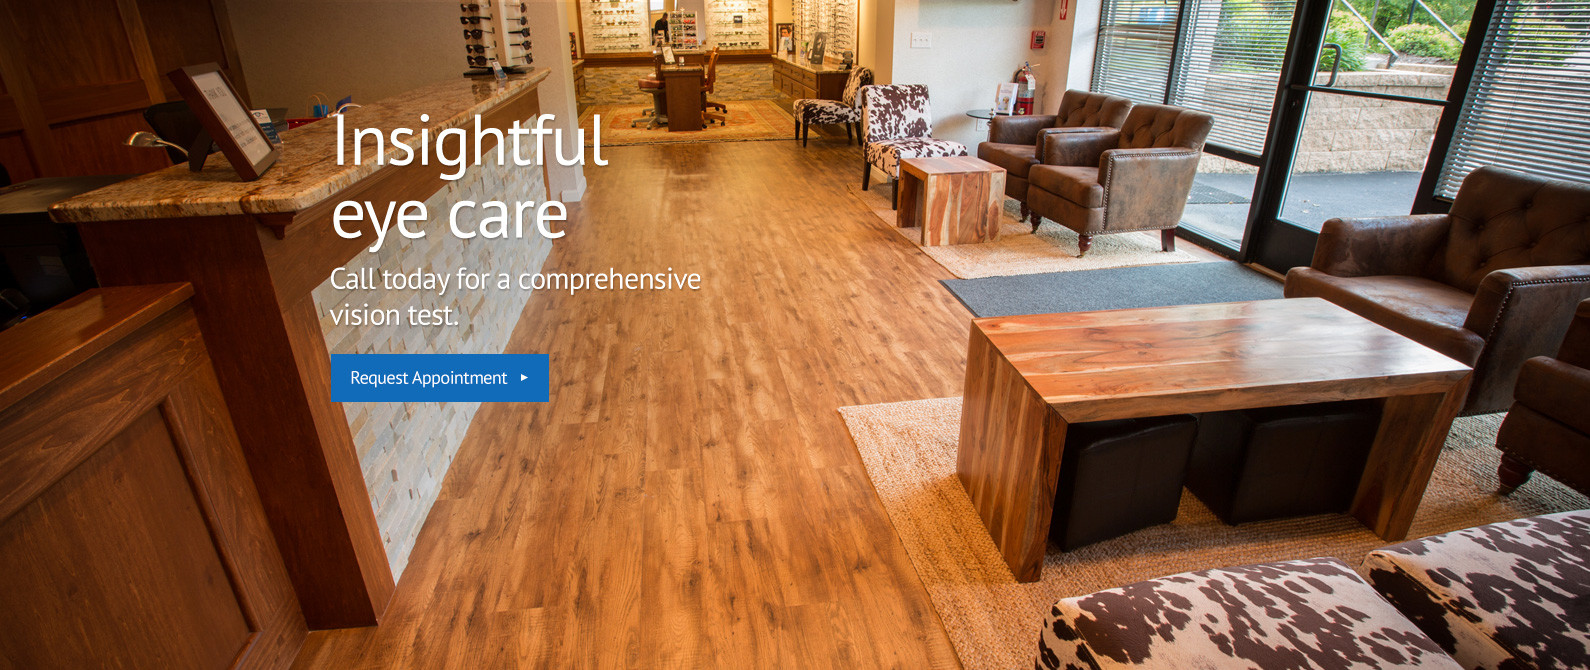 cheap hardwood flooring pittsburgh of seraly eye care associates optometry in mcmurray pa usa home regarding banner slide3